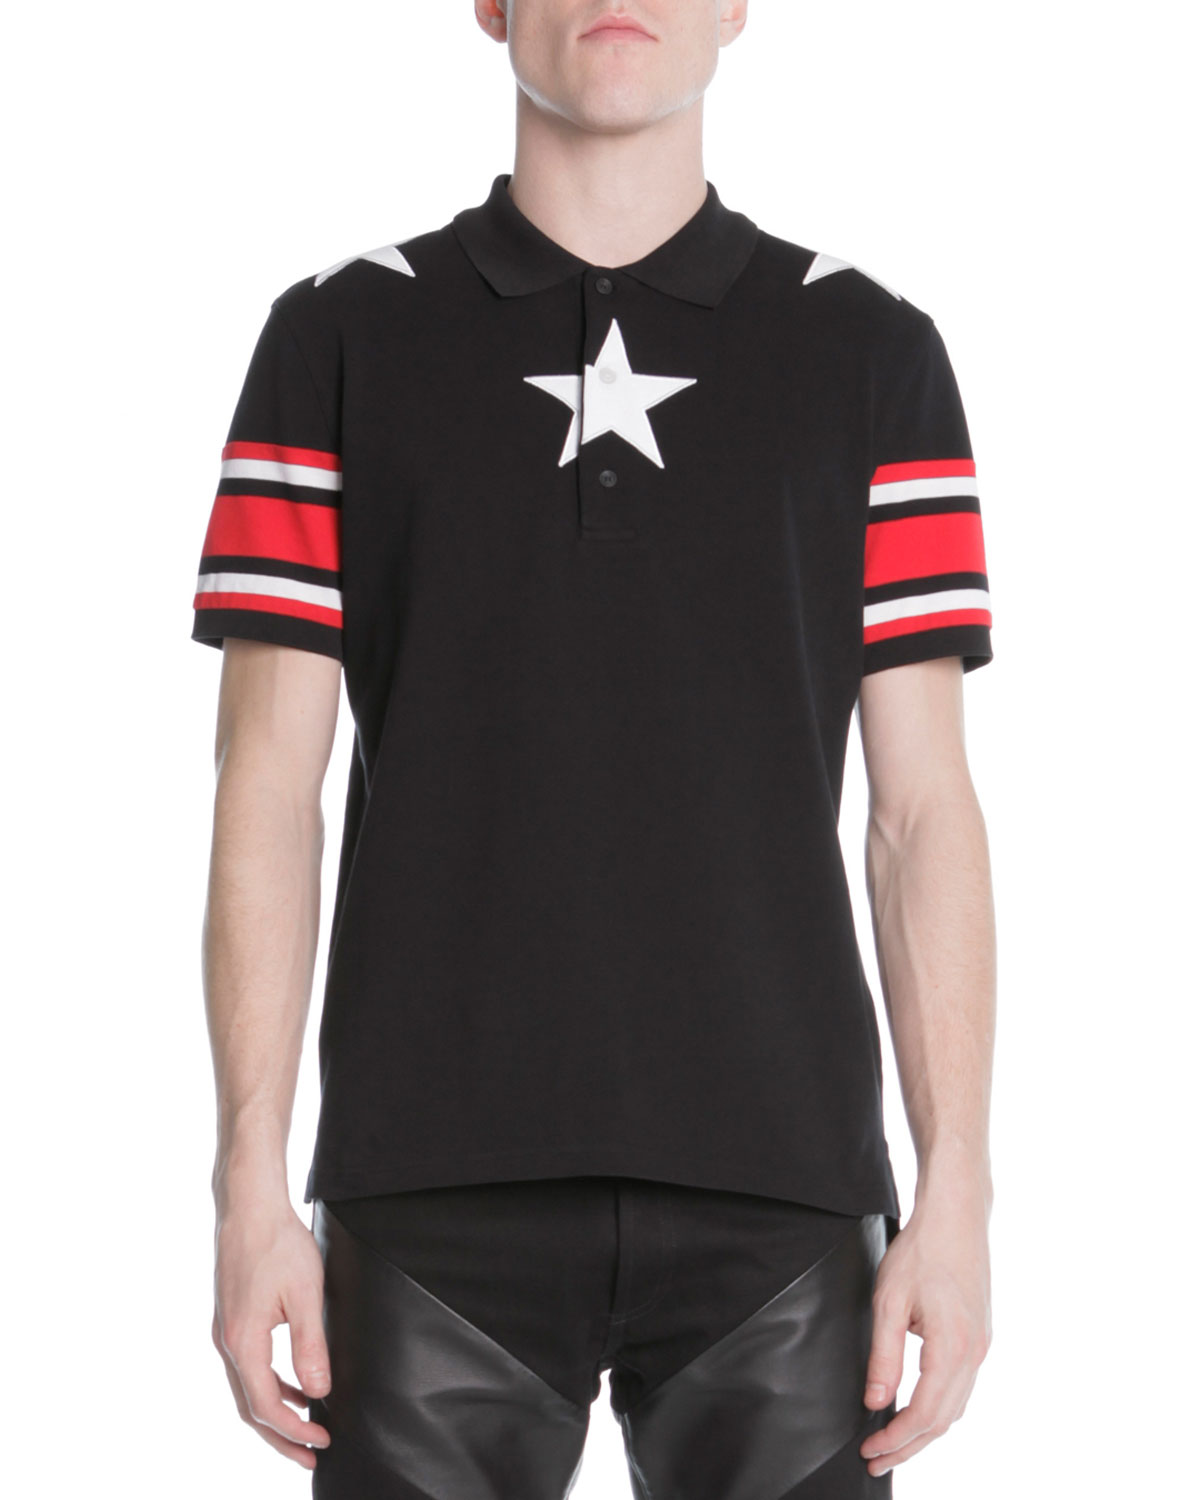 BLK POLO W 3 STARS AND RED/B